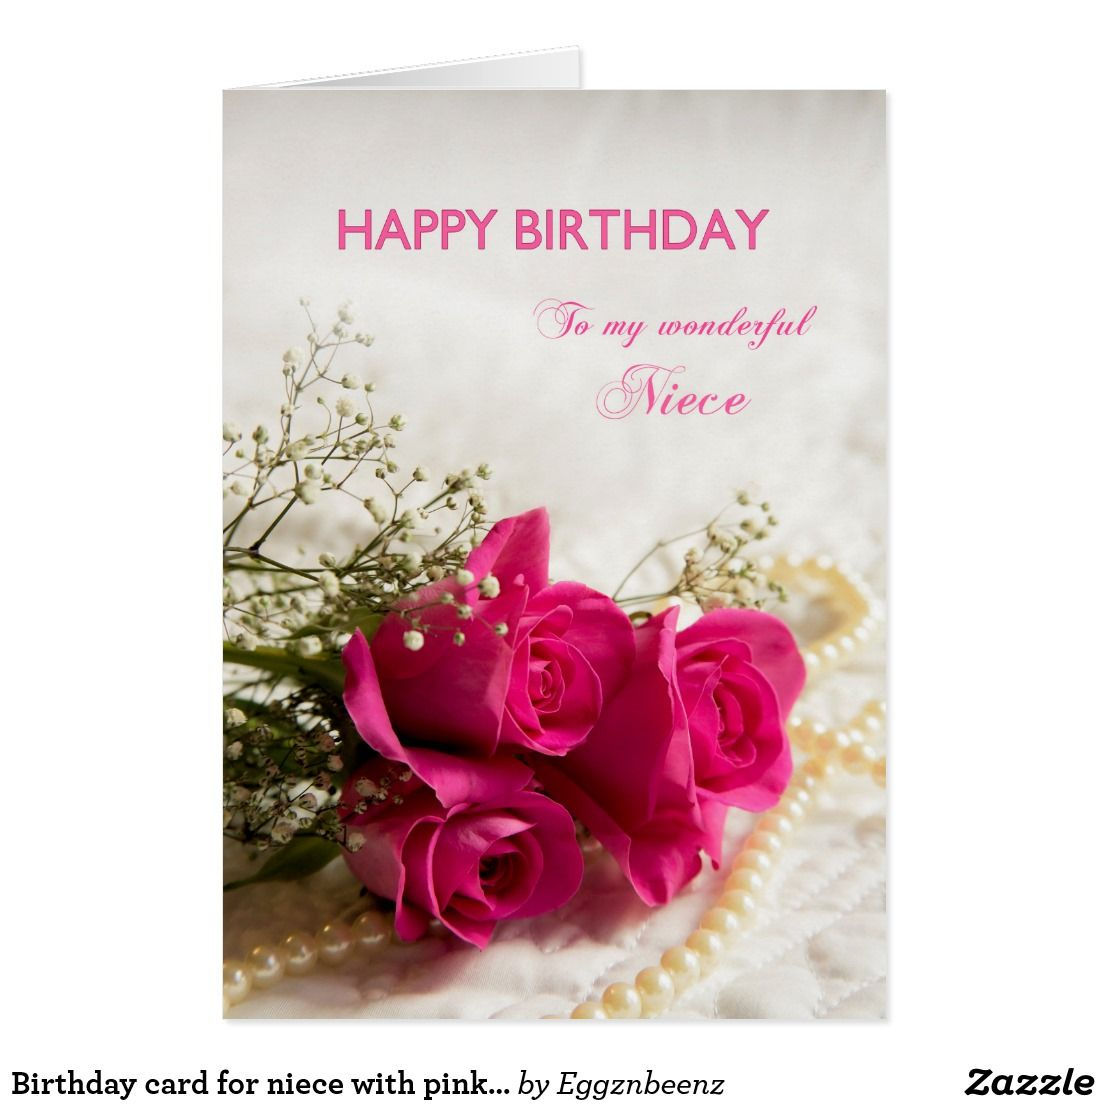 Birthday Card For Niece With Pink Roses Zazzle Com In 2021 Birthday Cards For Niece Happy Birthday Happy Birthday Mother